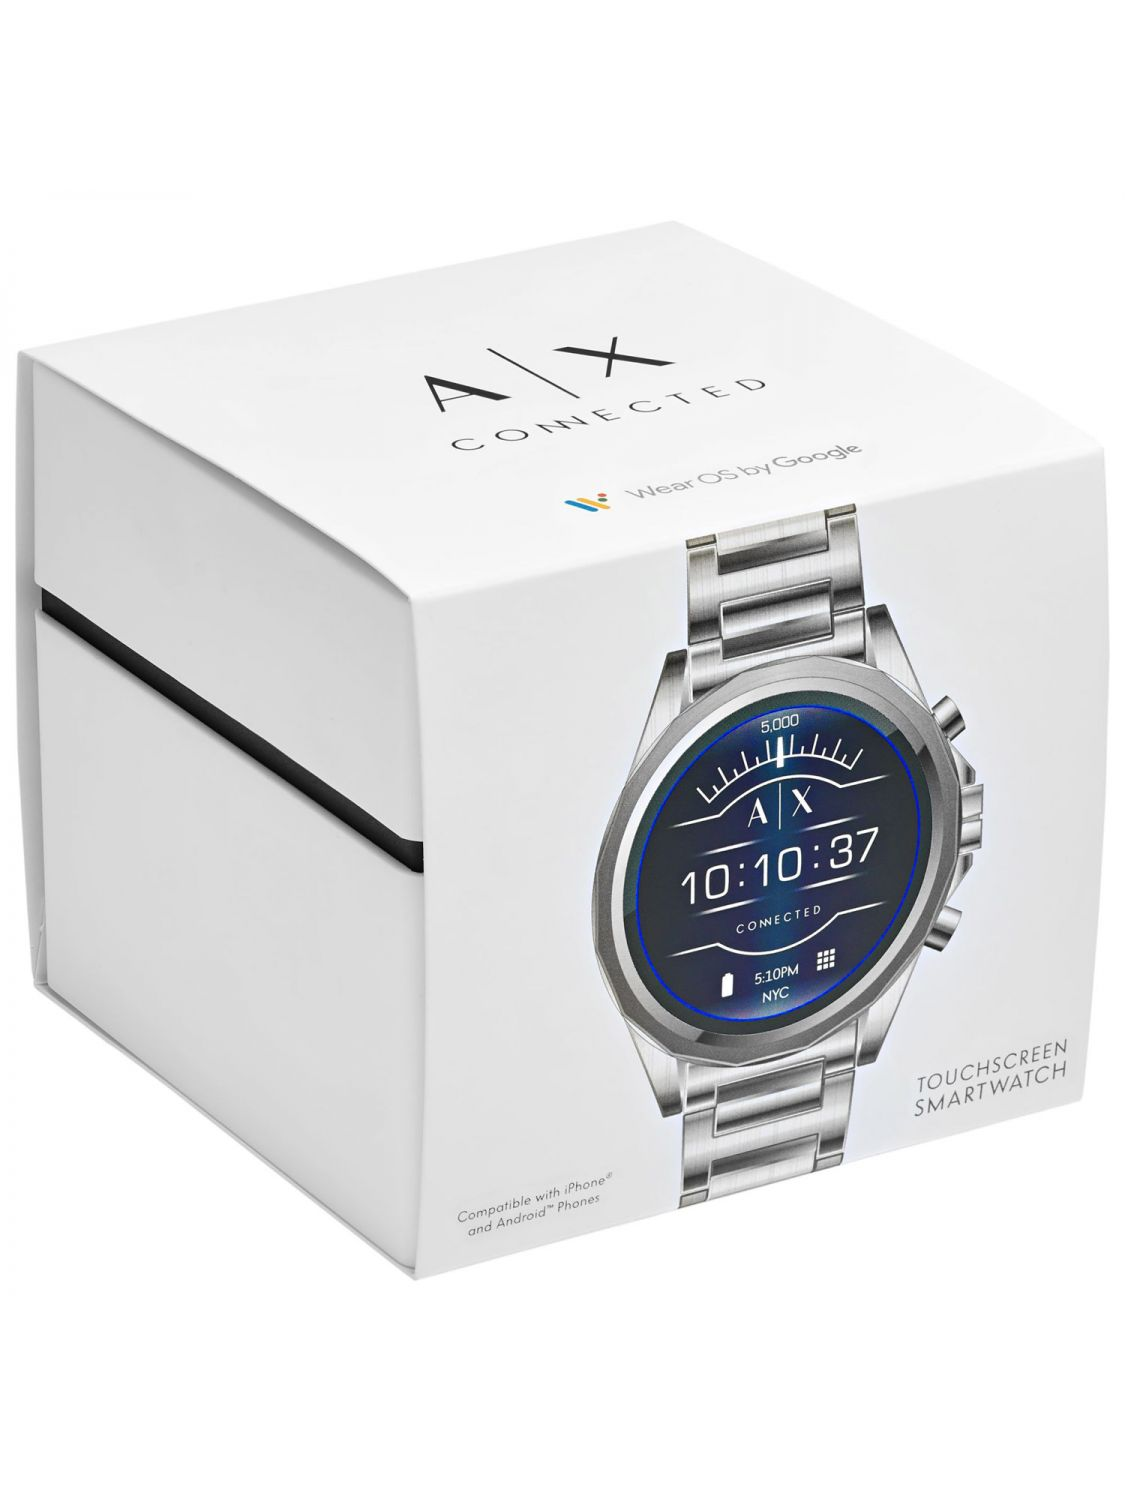 45745a233bb ... Armani Exchange Connected AXT2000 Men s Watch Touchscreen Smartwatch  Image ...